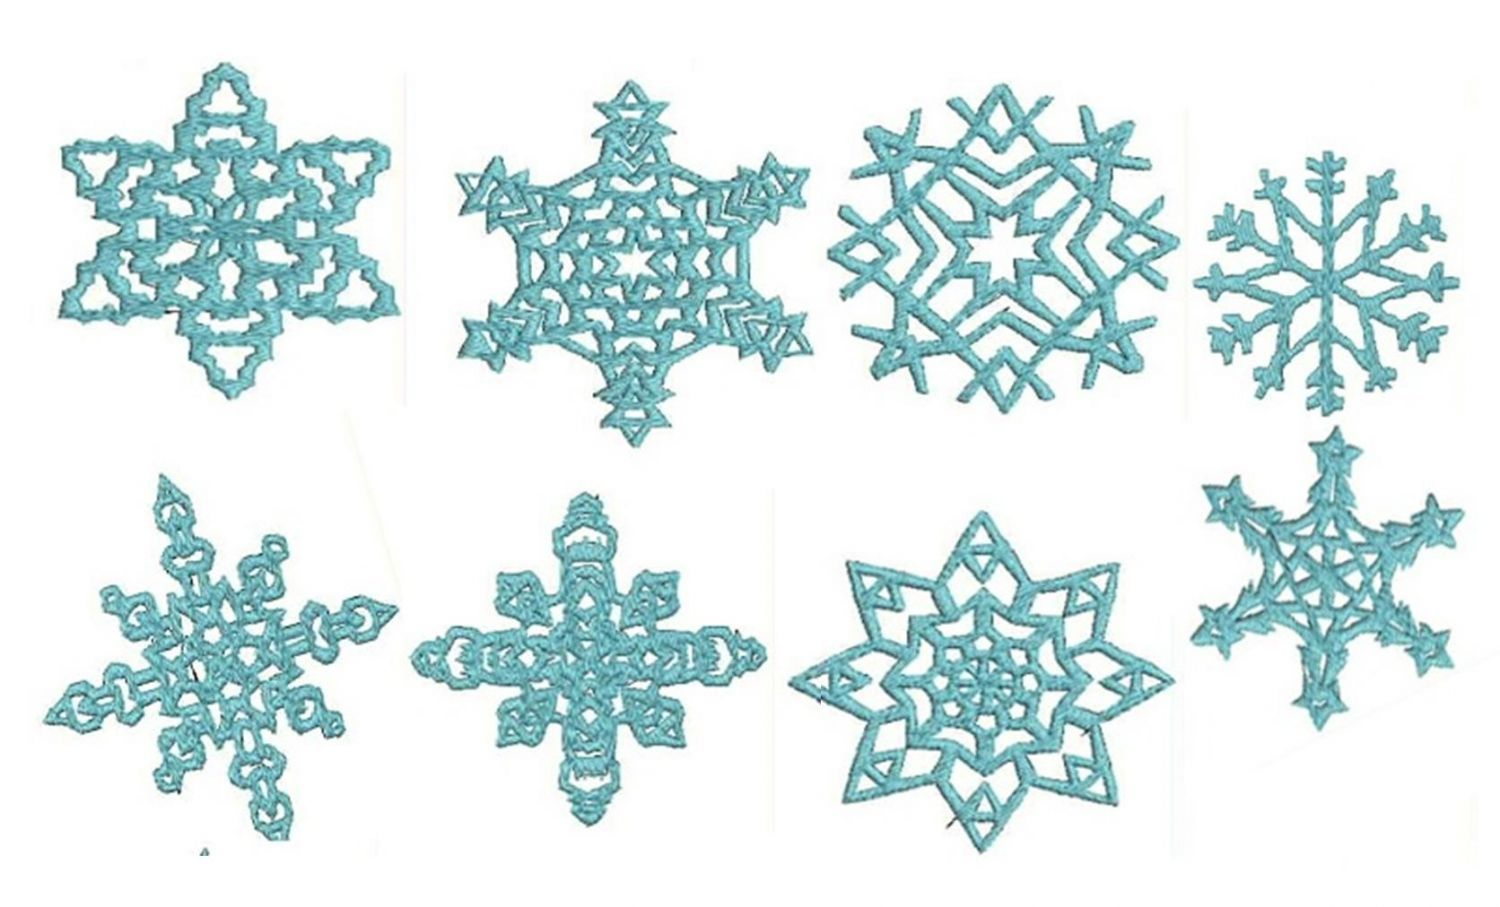 Pattern Template For Snowflakes Patterns Royal Icing Cakes Jpg 1500x907 Frozen Snowflake